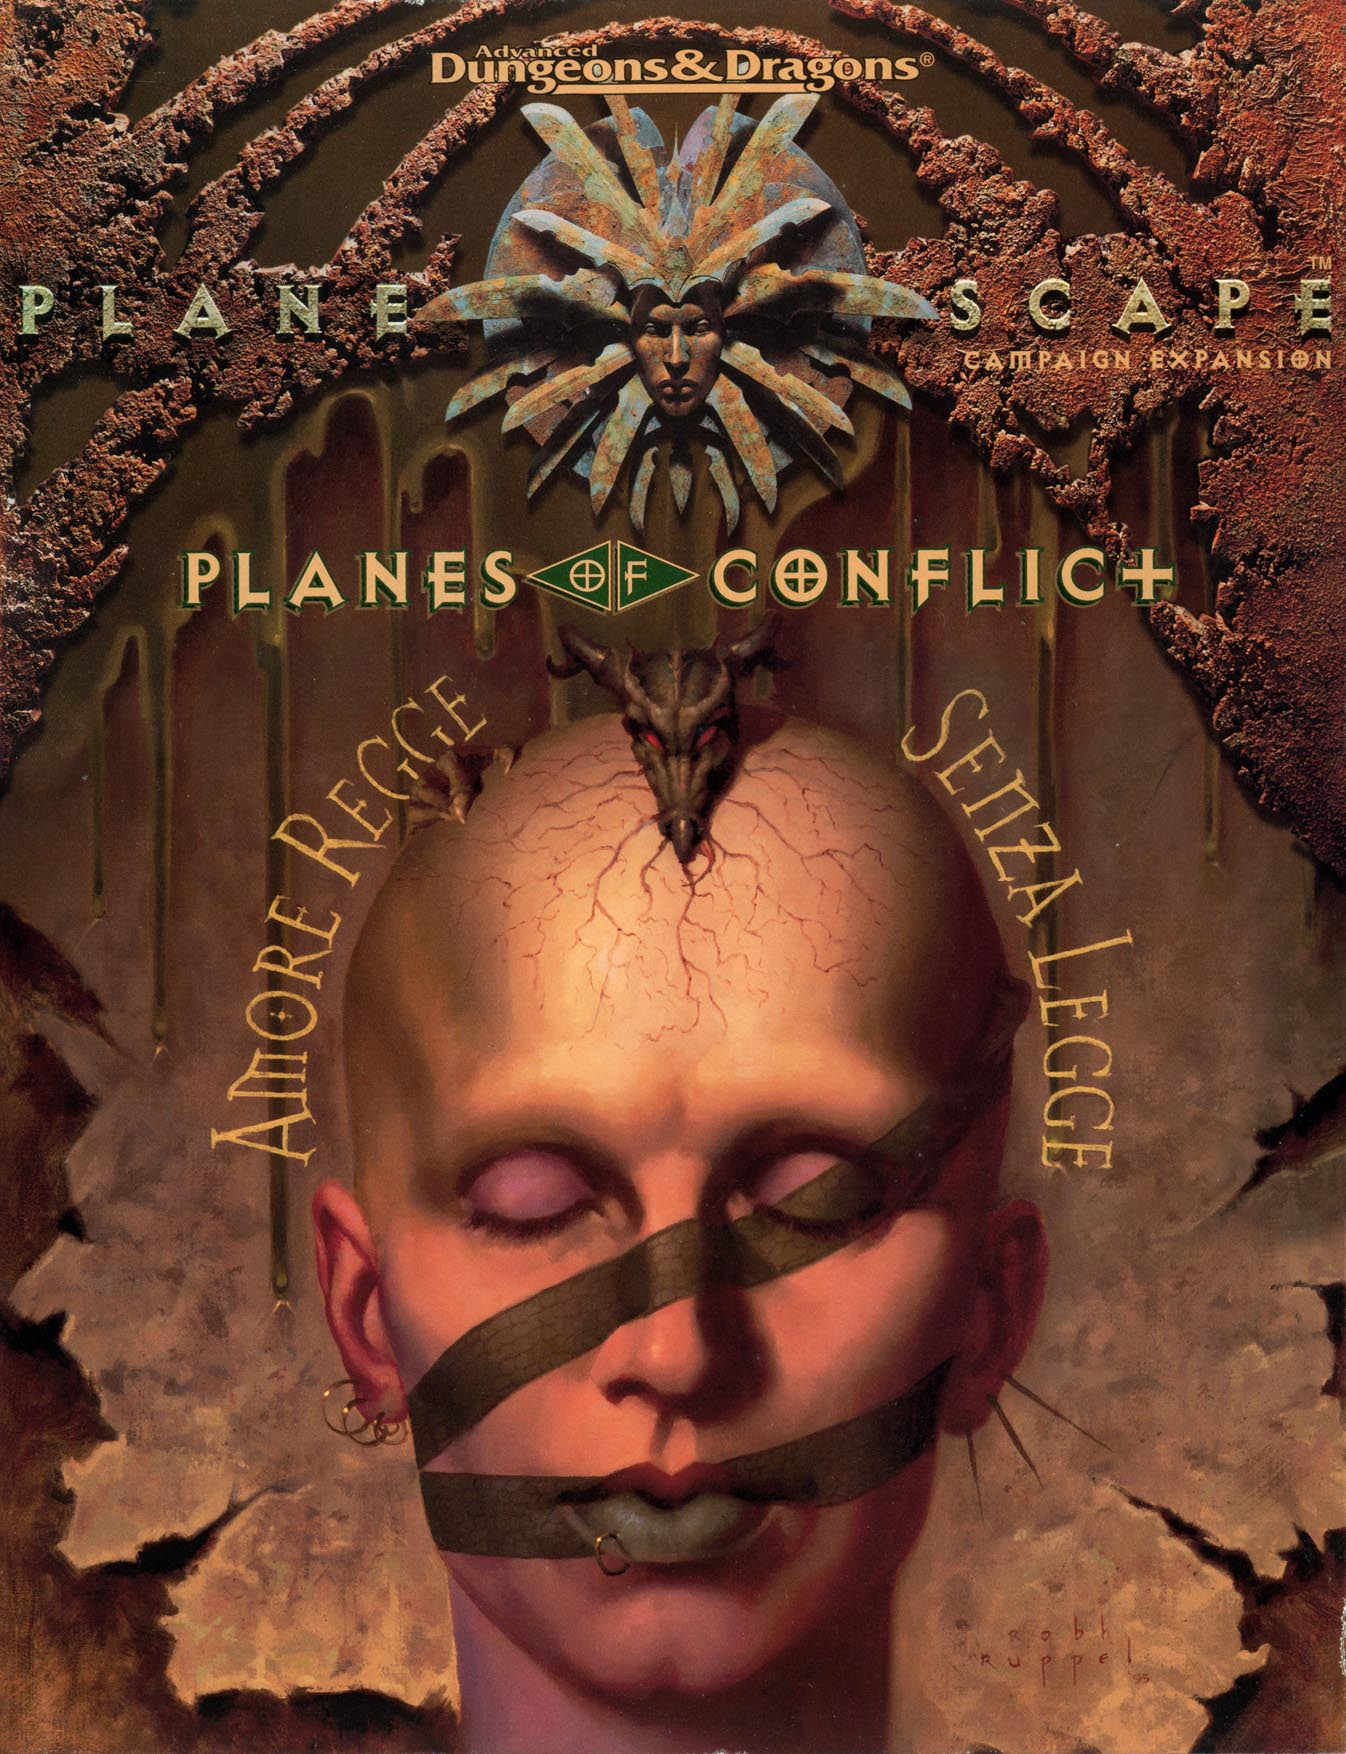 Planes of Conflict (boxed set)